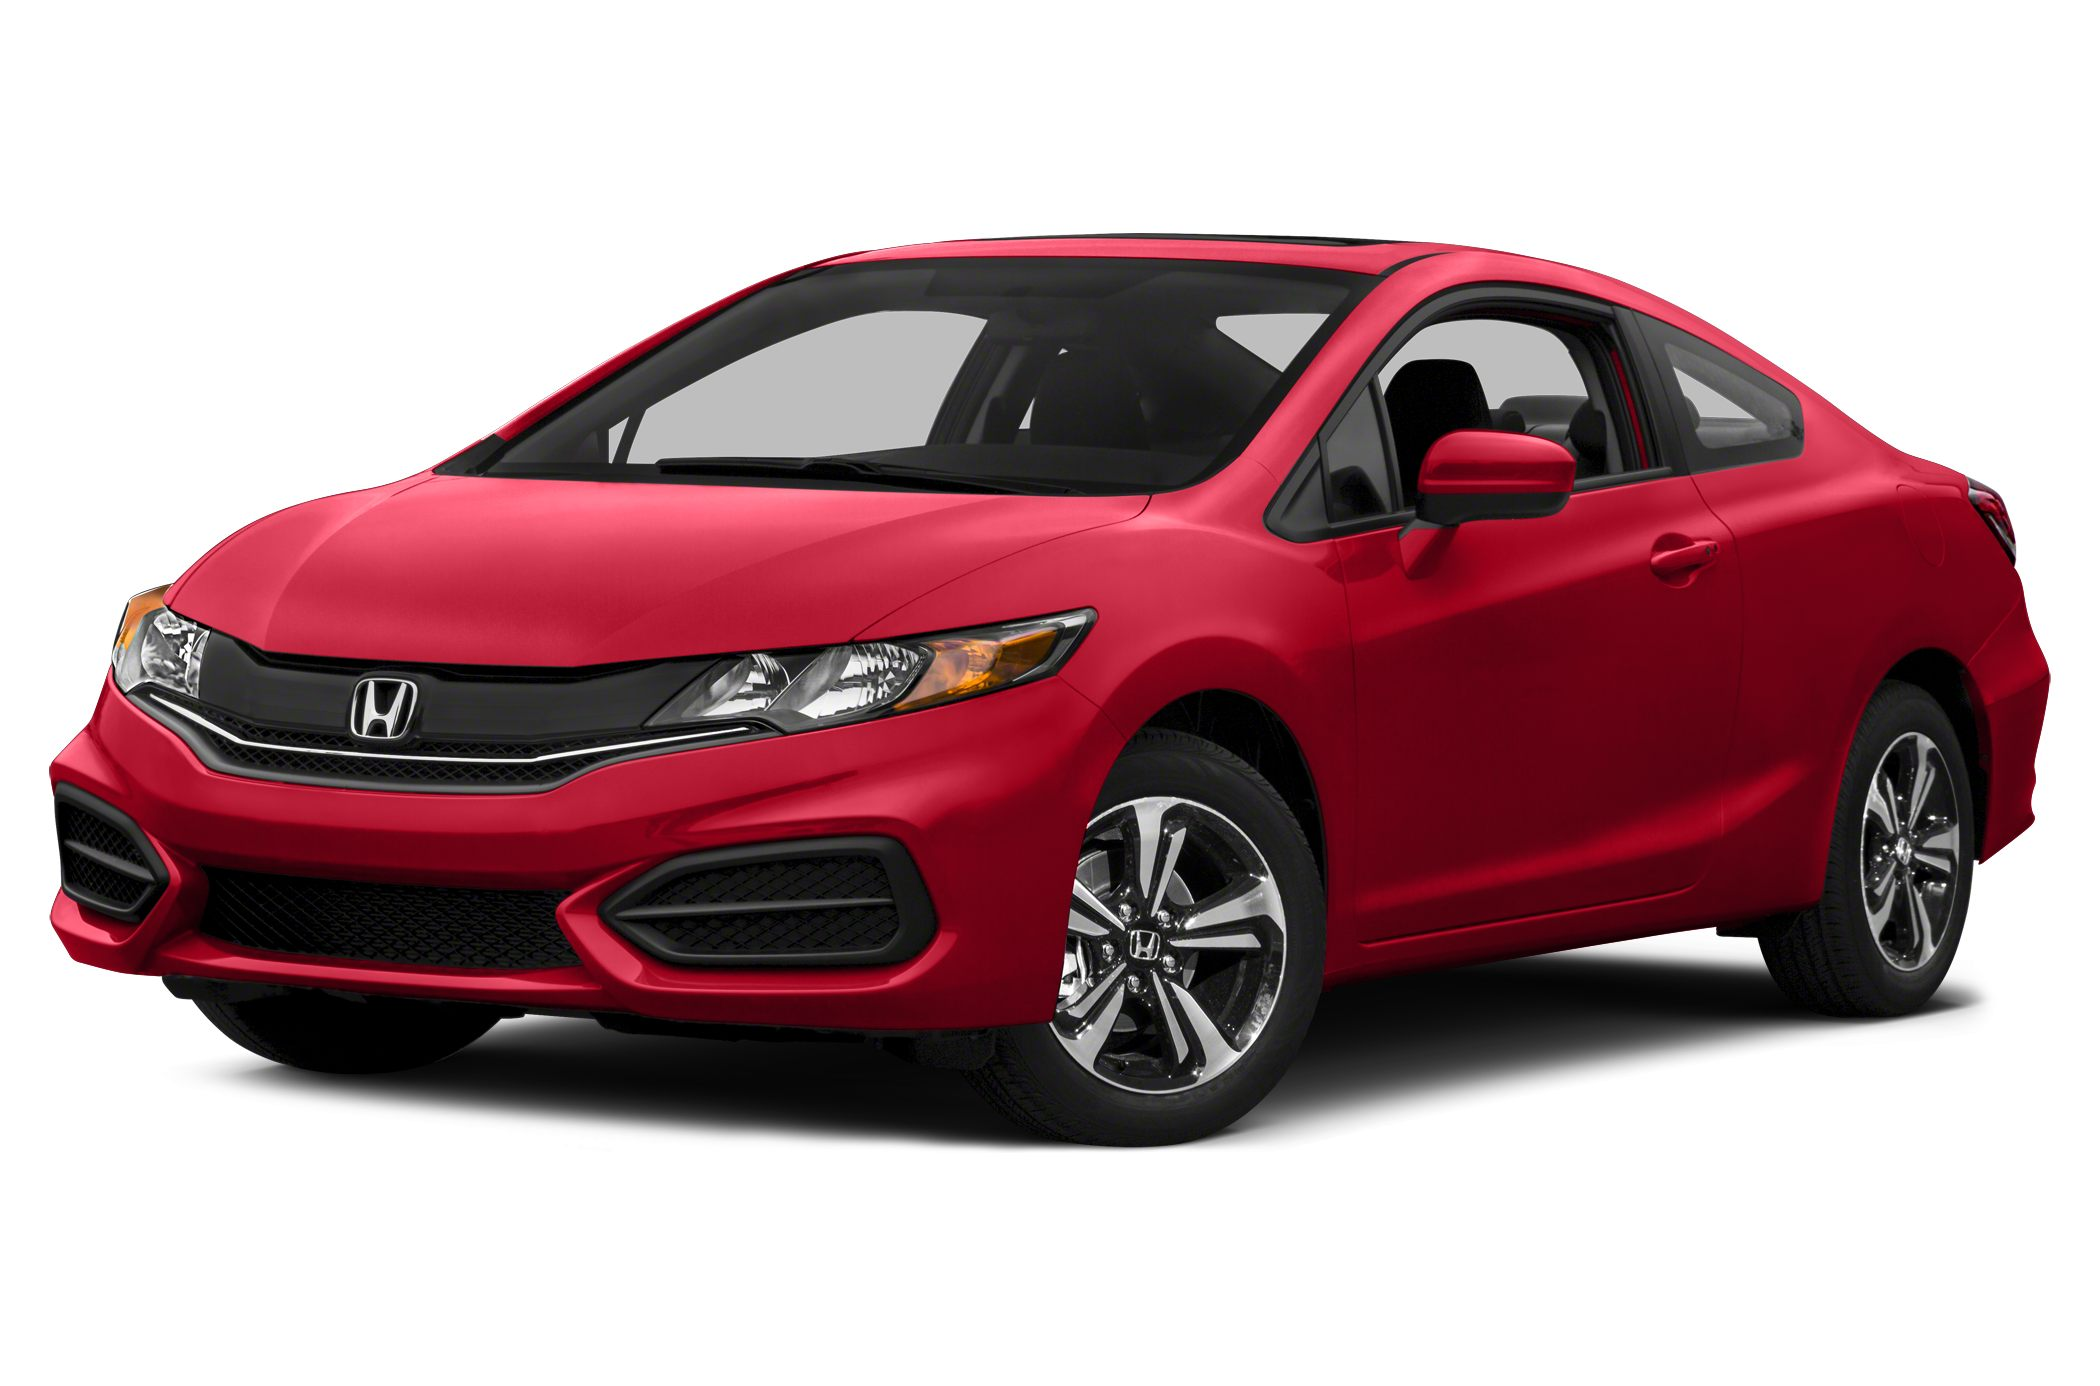 2015 Honda Civic EX Coupe for sale in Rutland for $21,980 with 3 miles.